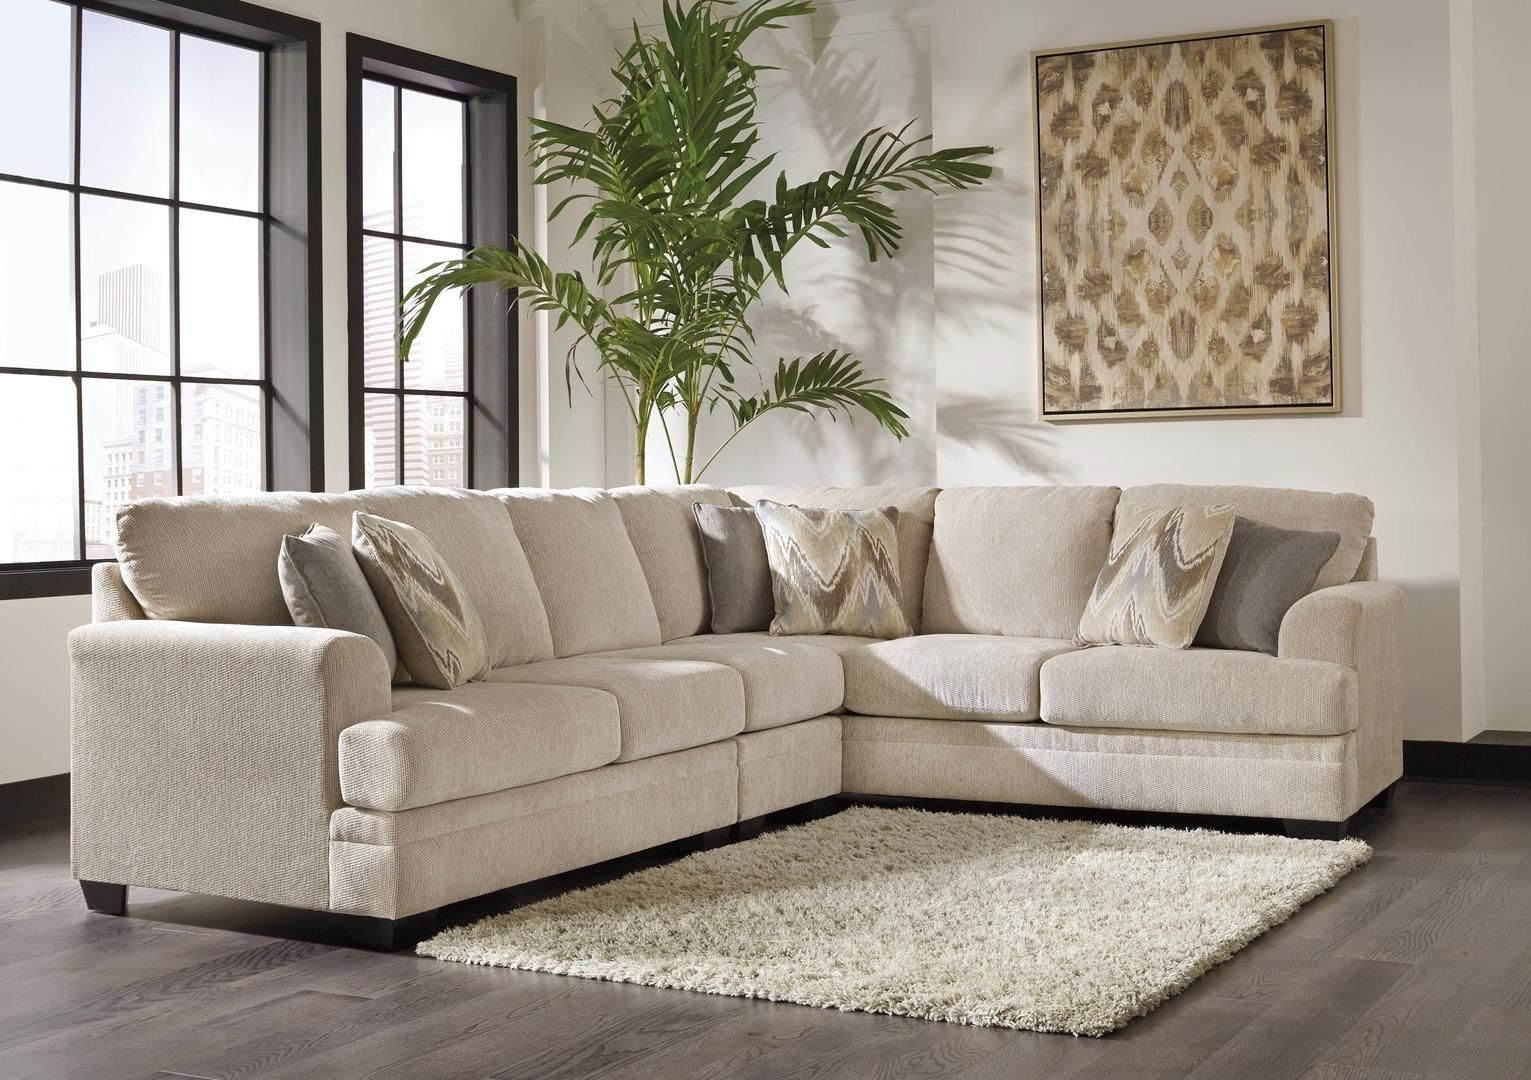 Ameer 81806 55 46 67 3 Piece Fabric Sectional Sofa With Left Arm Within Malbry Point 3 Piece Sectionals With Laf Chaise (View 8 of 25)